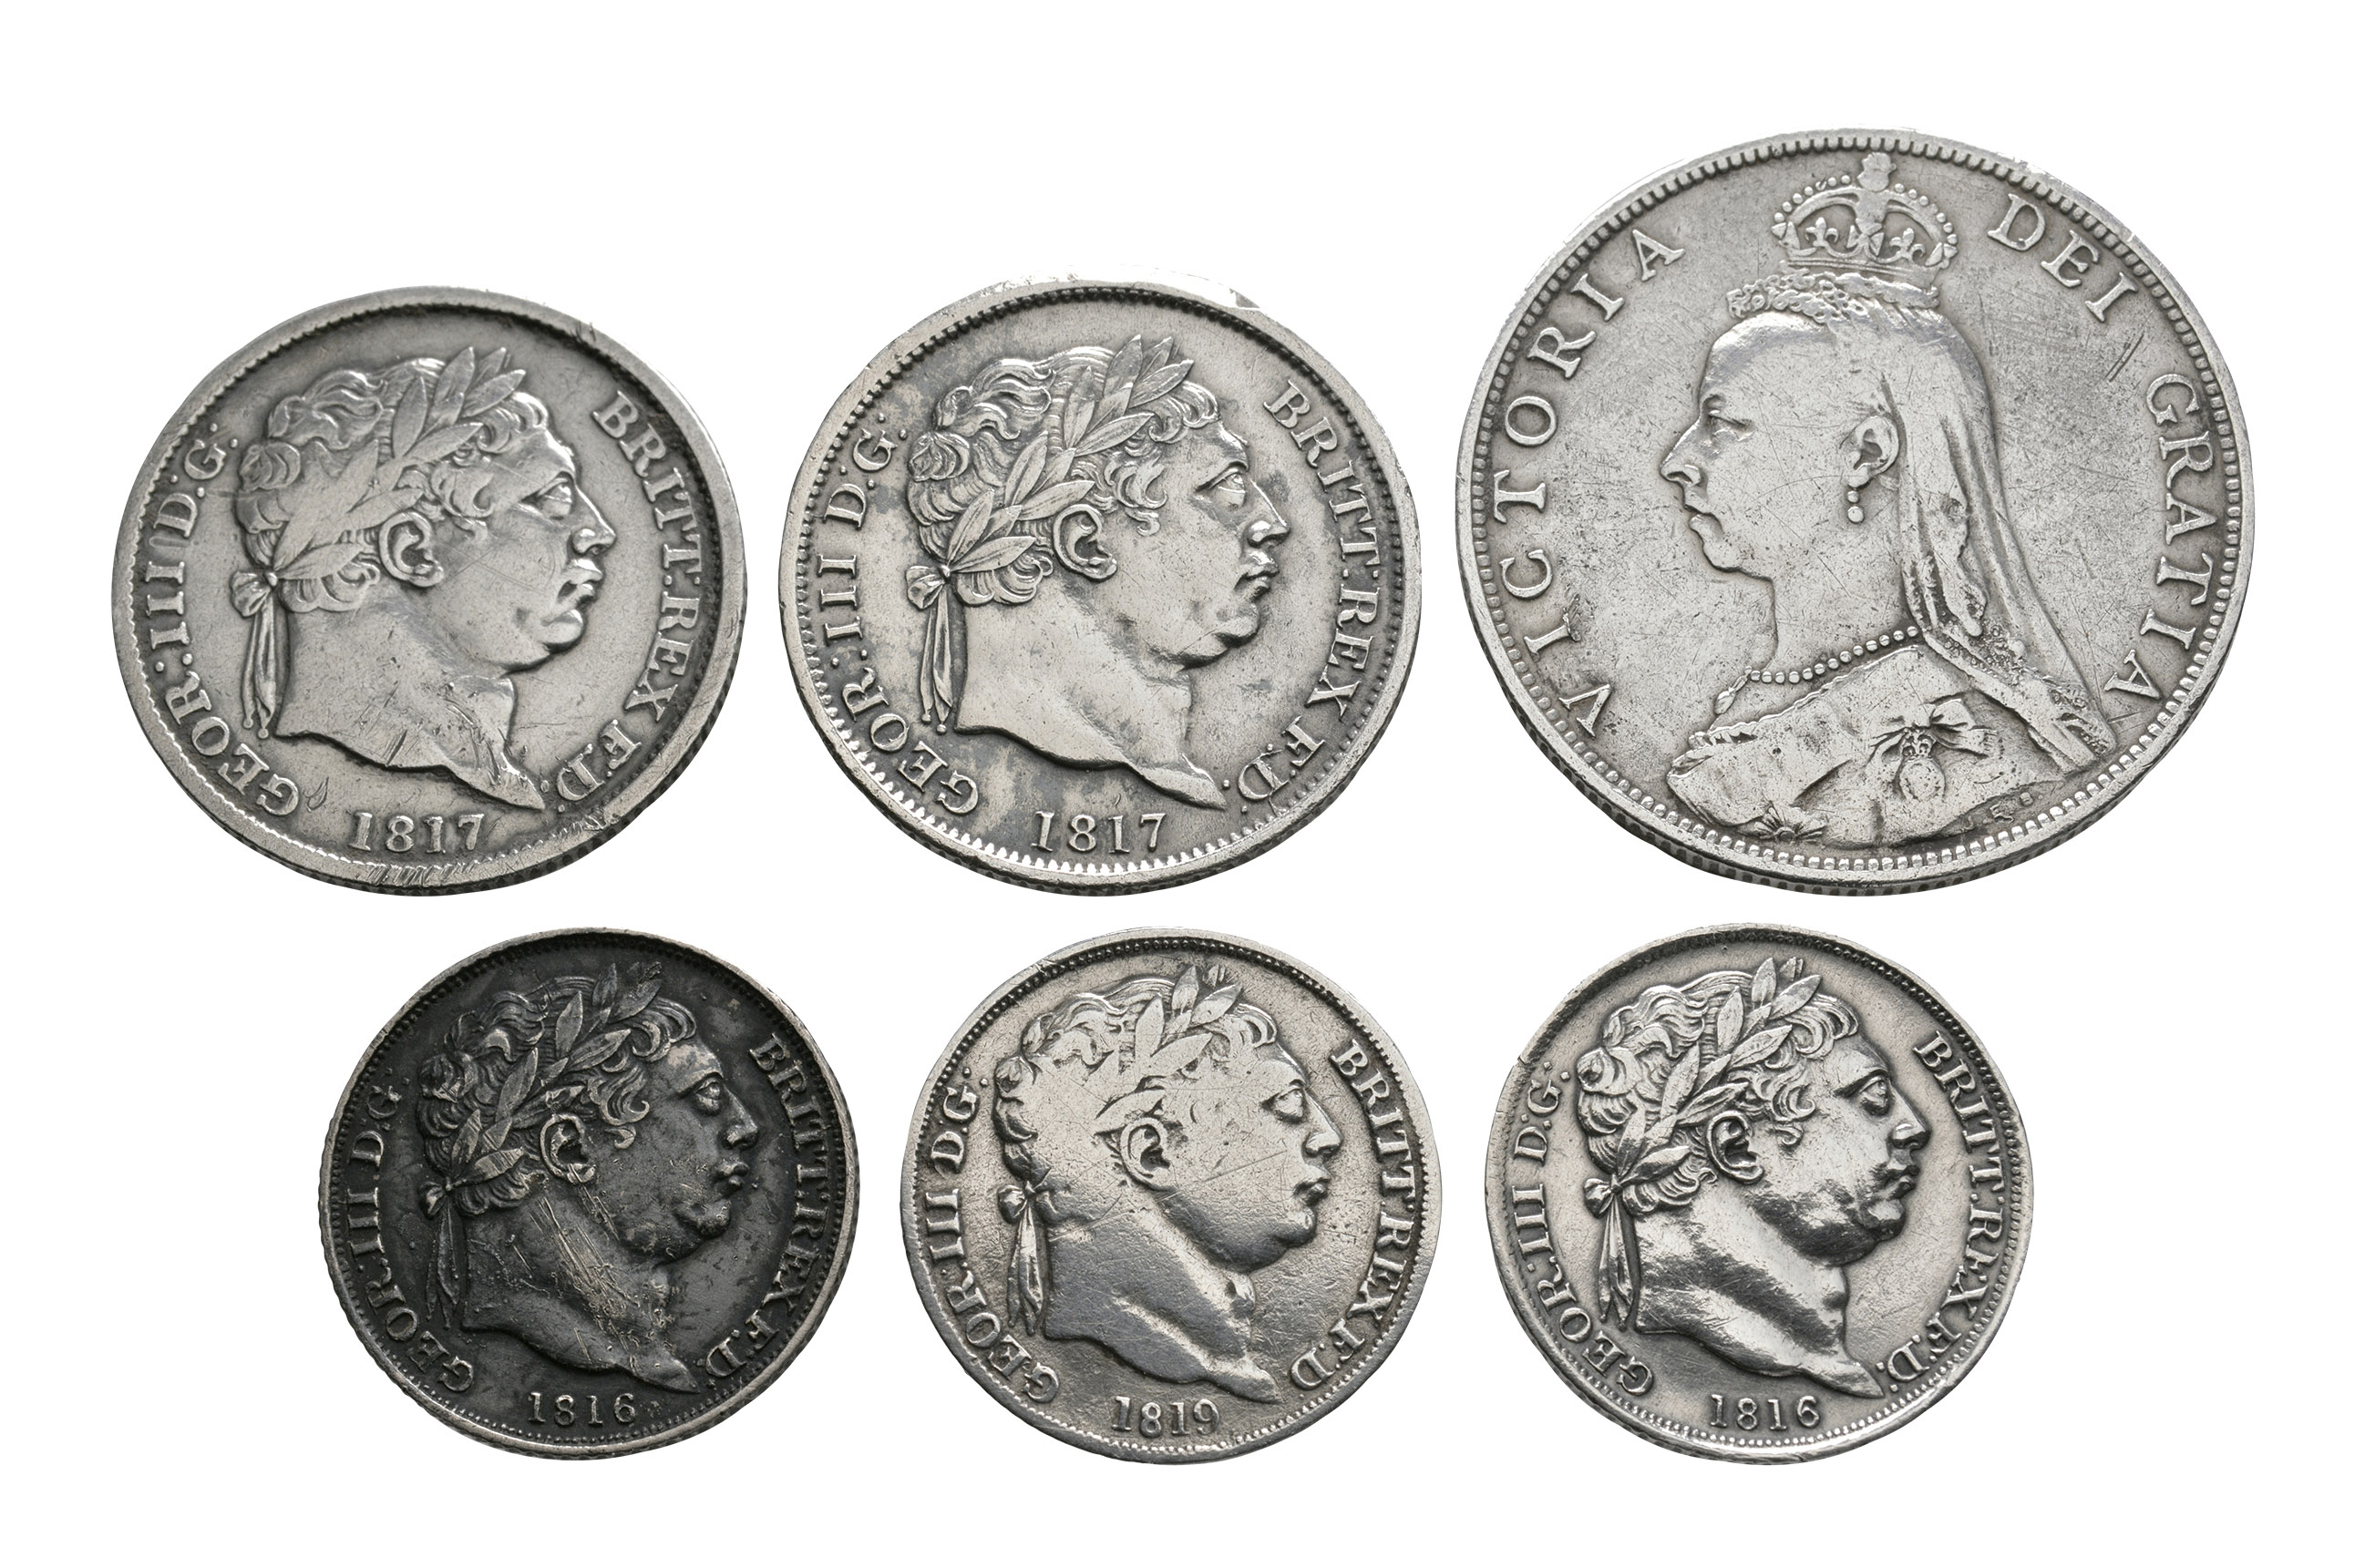 English Milled Coins - George III to Victoria - Florin, Shillings and Sixpences [6]